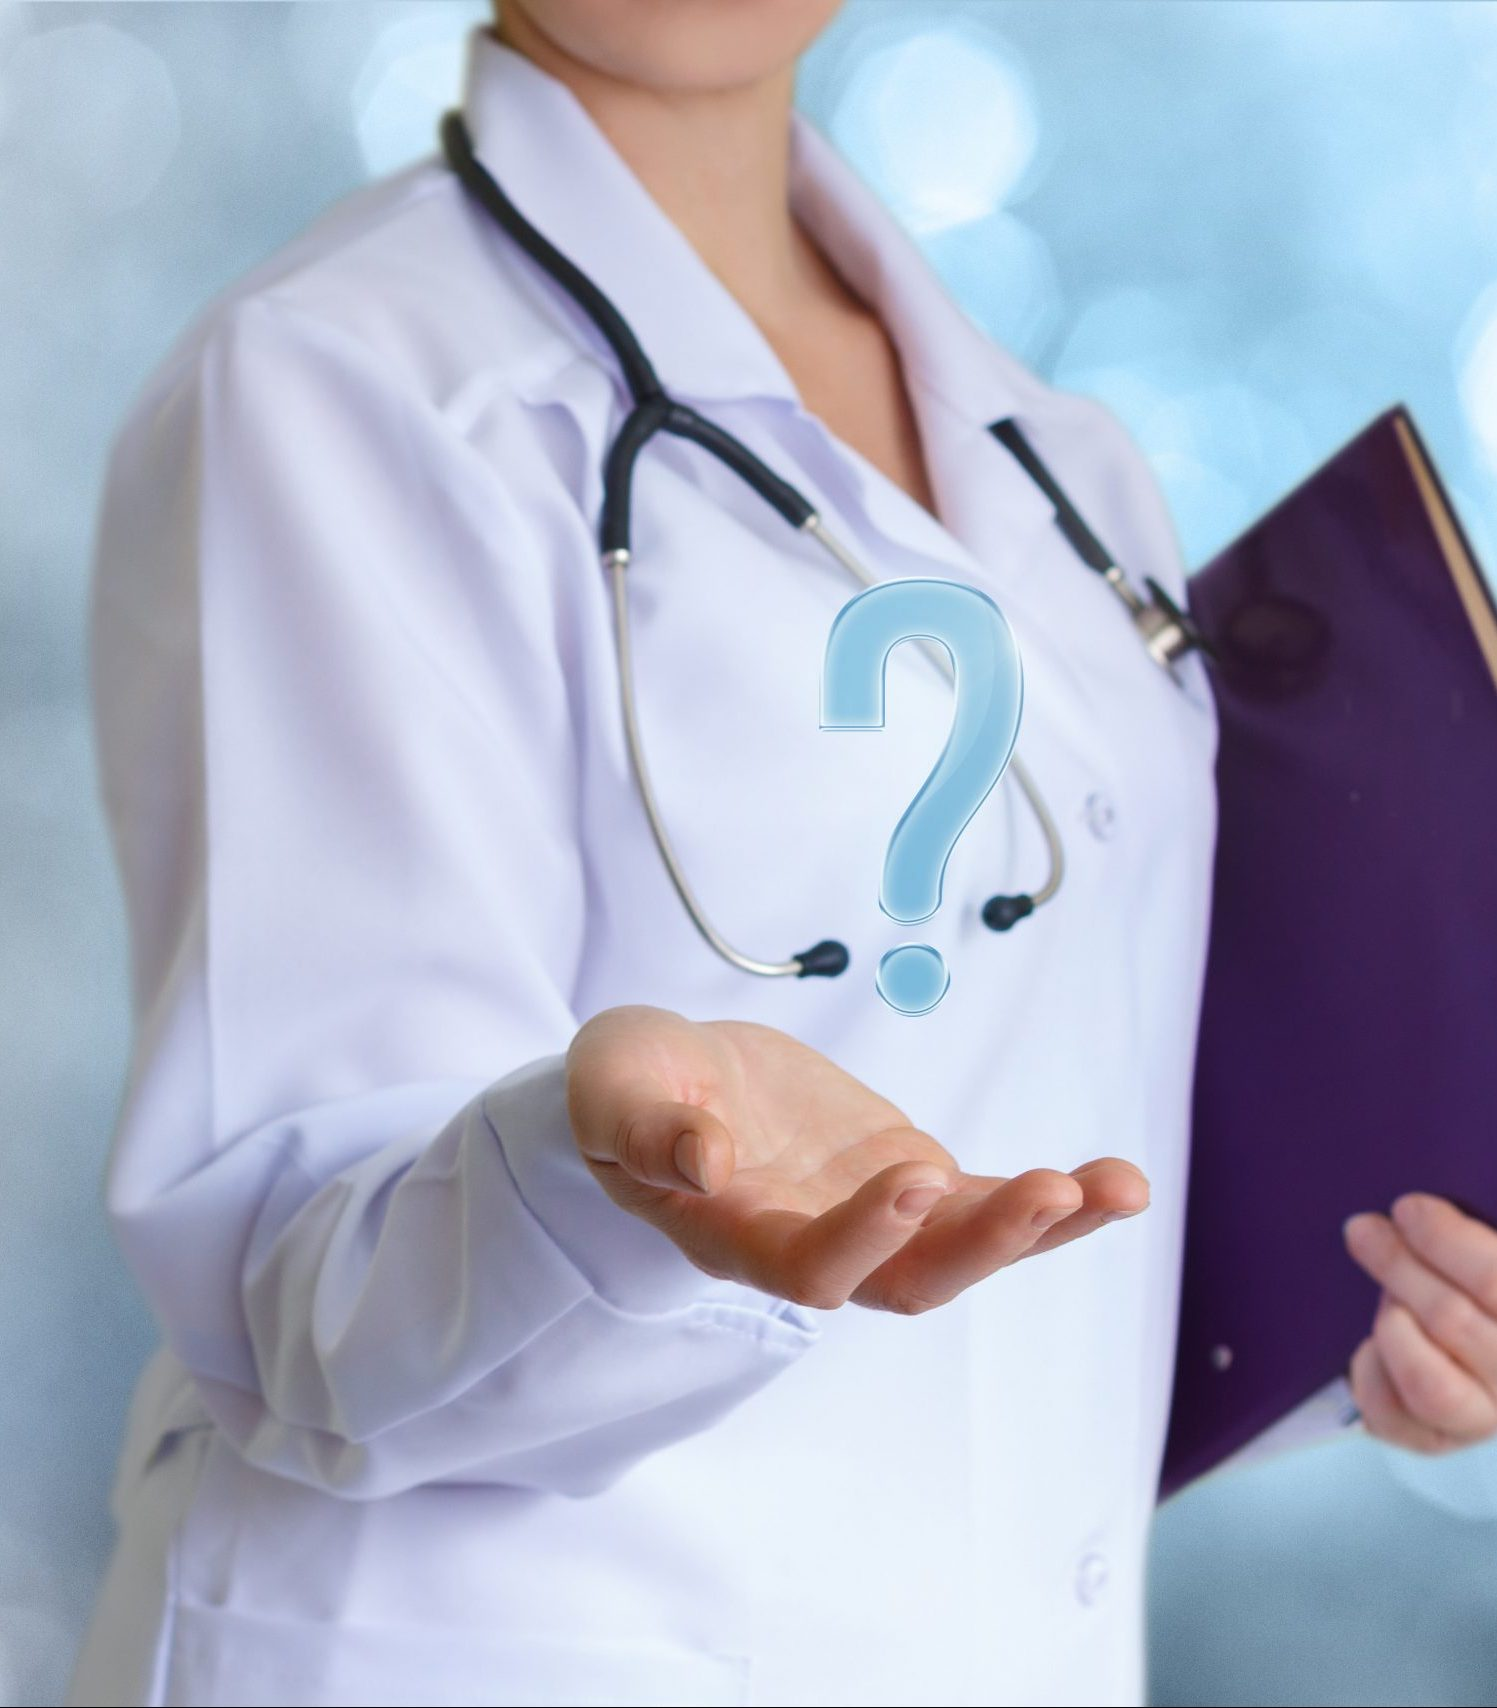 Doctor answers questions.